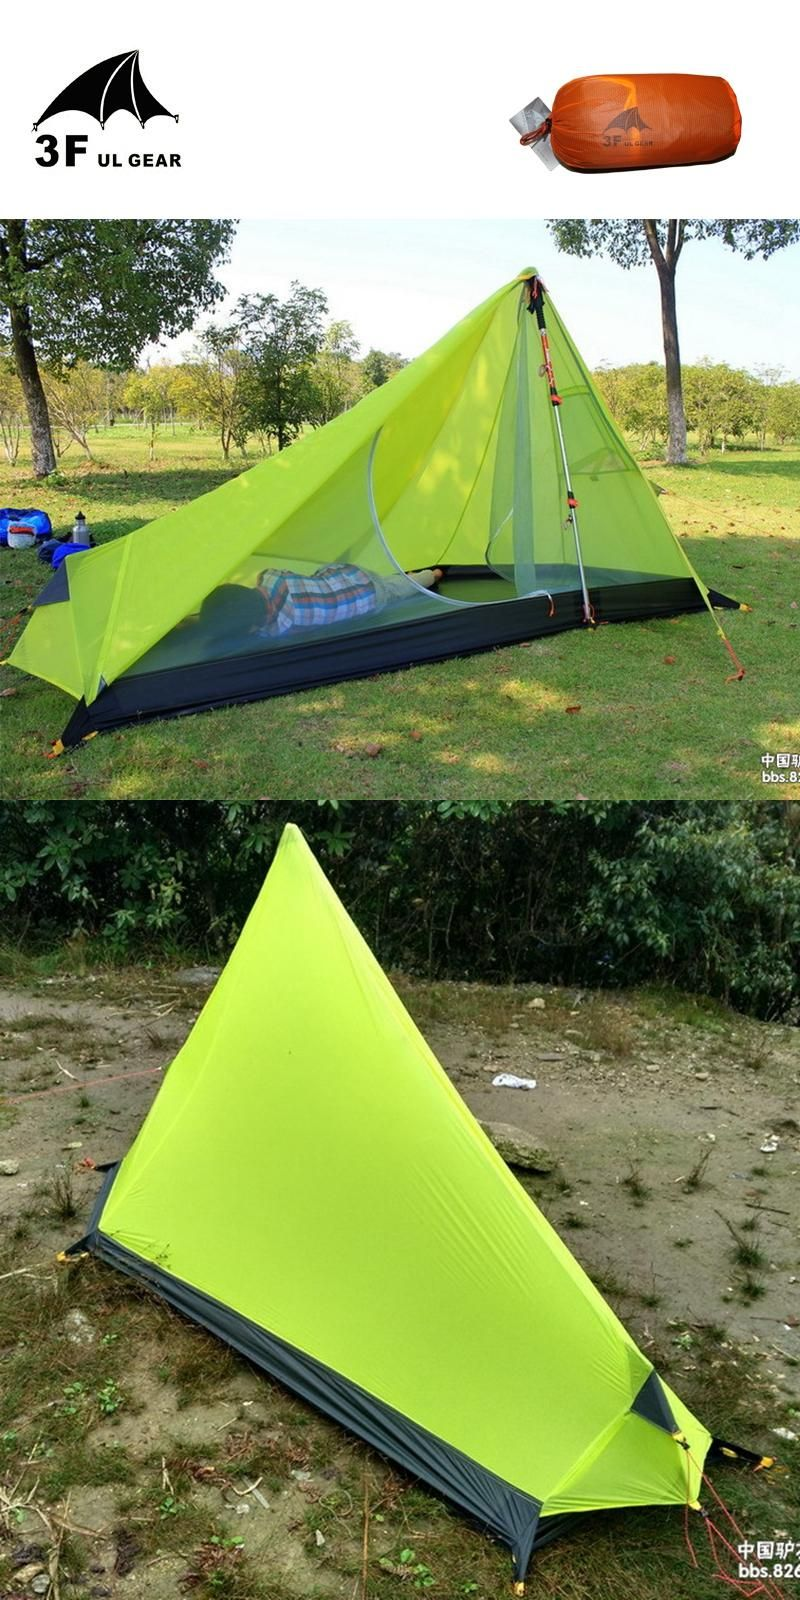 [Visit to Buy] 3F UL GEAR 1 Man Ultralight C&ing Tent Nylon Silicone 5000mm & Visit to Buy] 3F UL GEAR 1 Man Ultralight Camping Tent Nylon ...